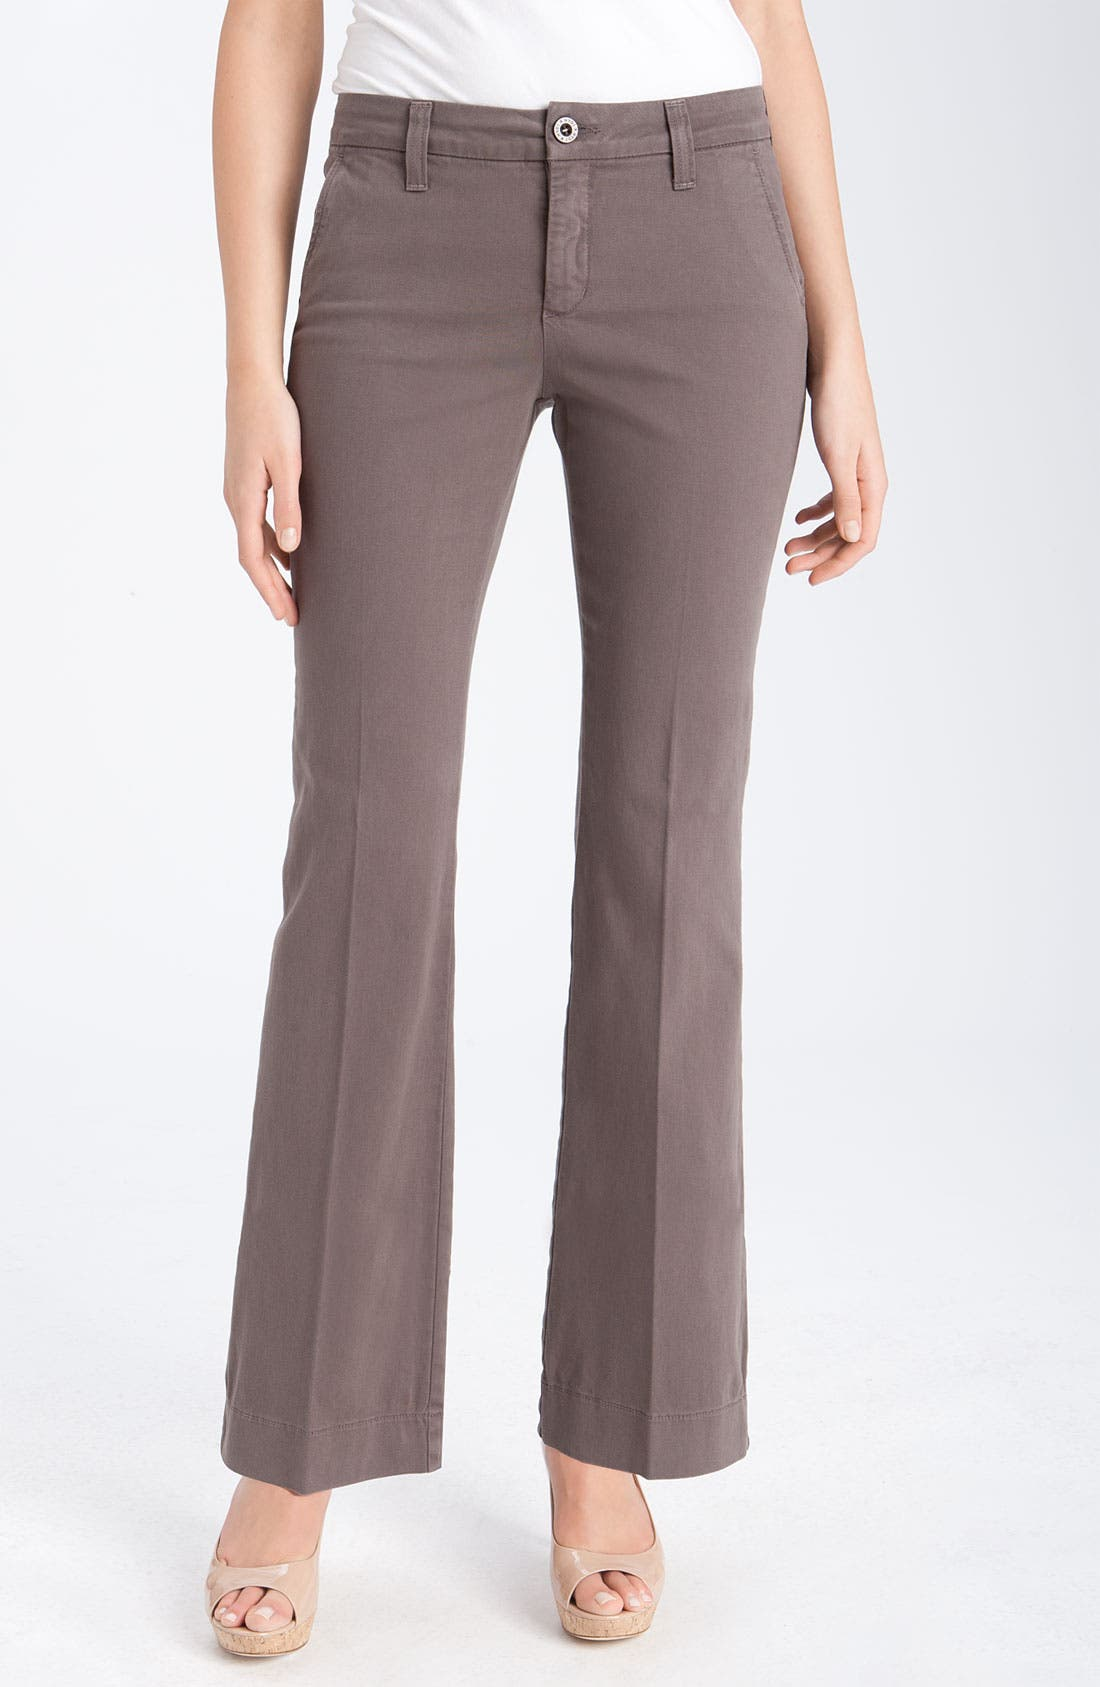 Alternate Image 1 Selected - NYDJ 'Vanessa' Stretch Trousers (Petite)